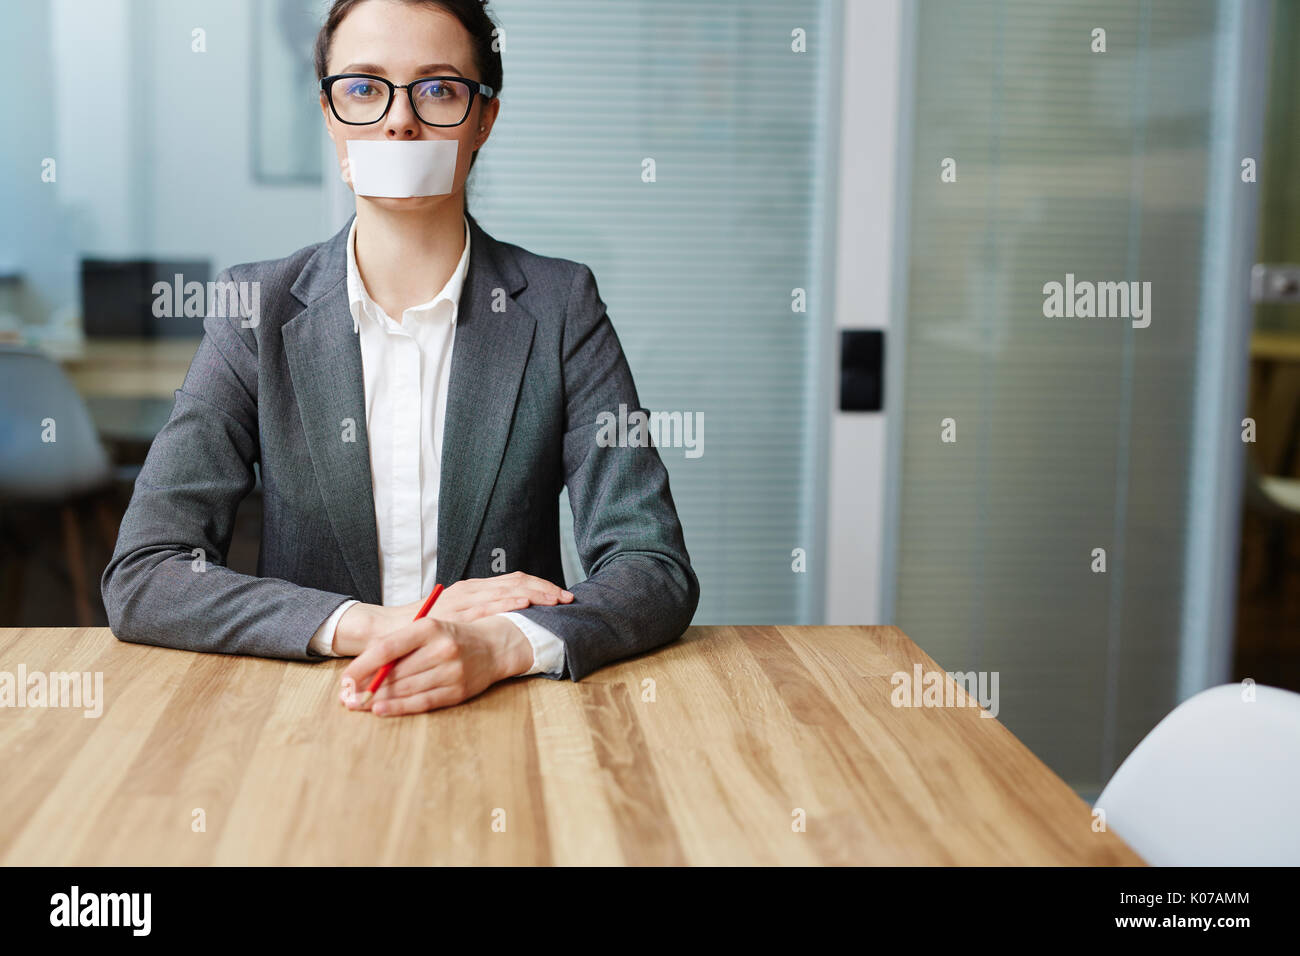 Mute businesswoman - Stock Image